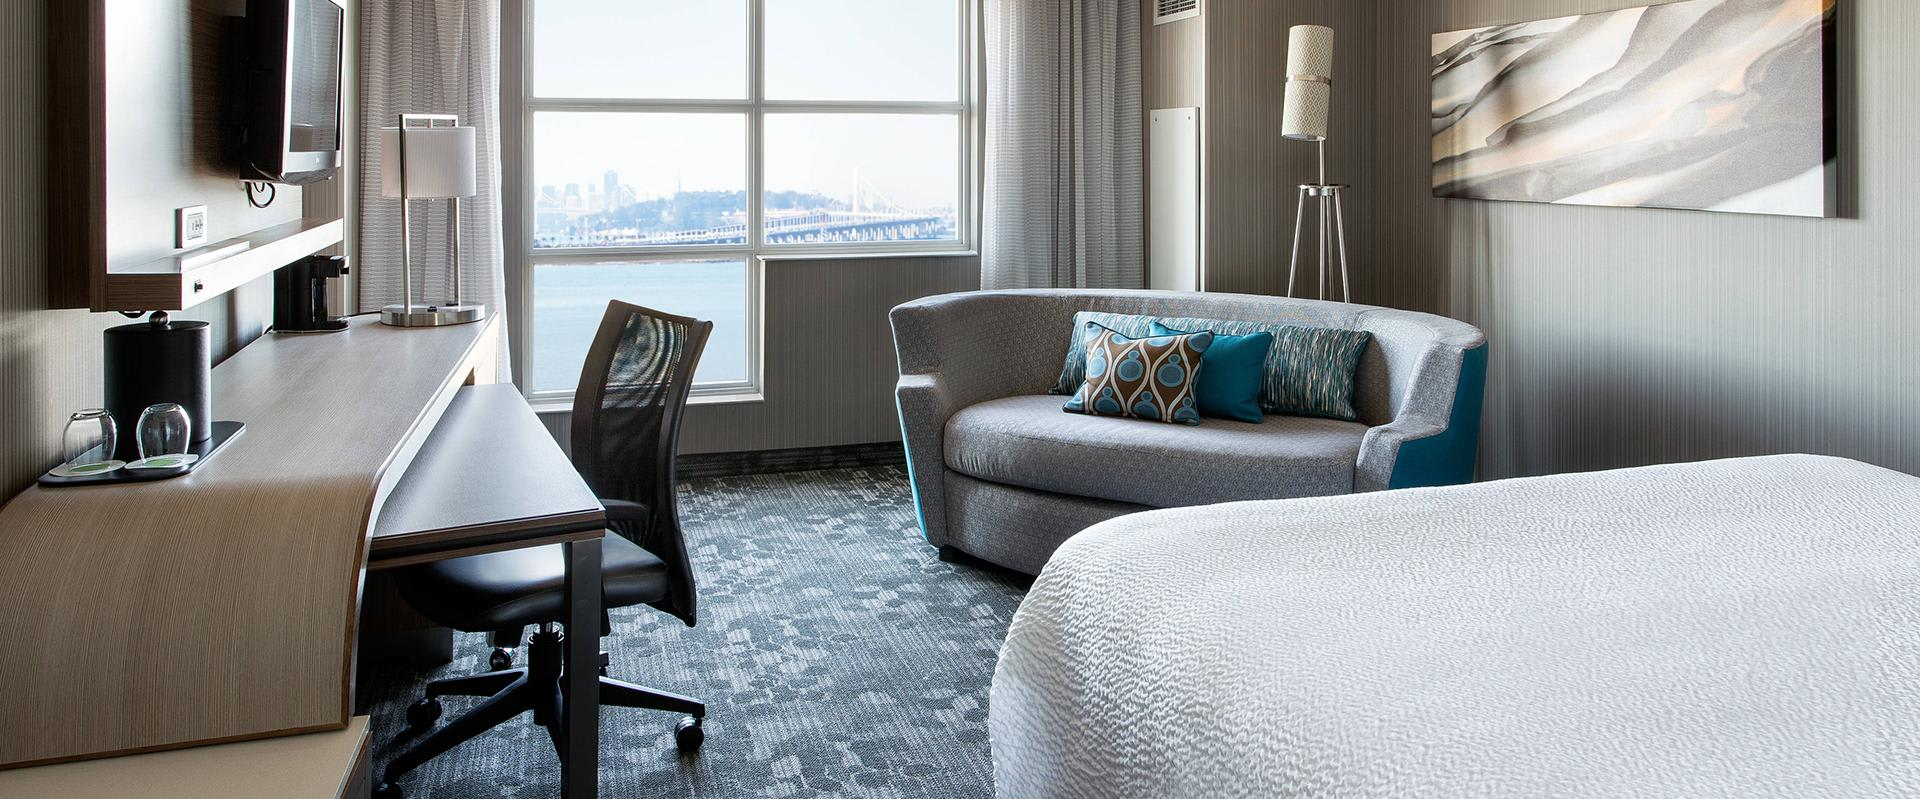 Emeryville Hotel Room with Bay View